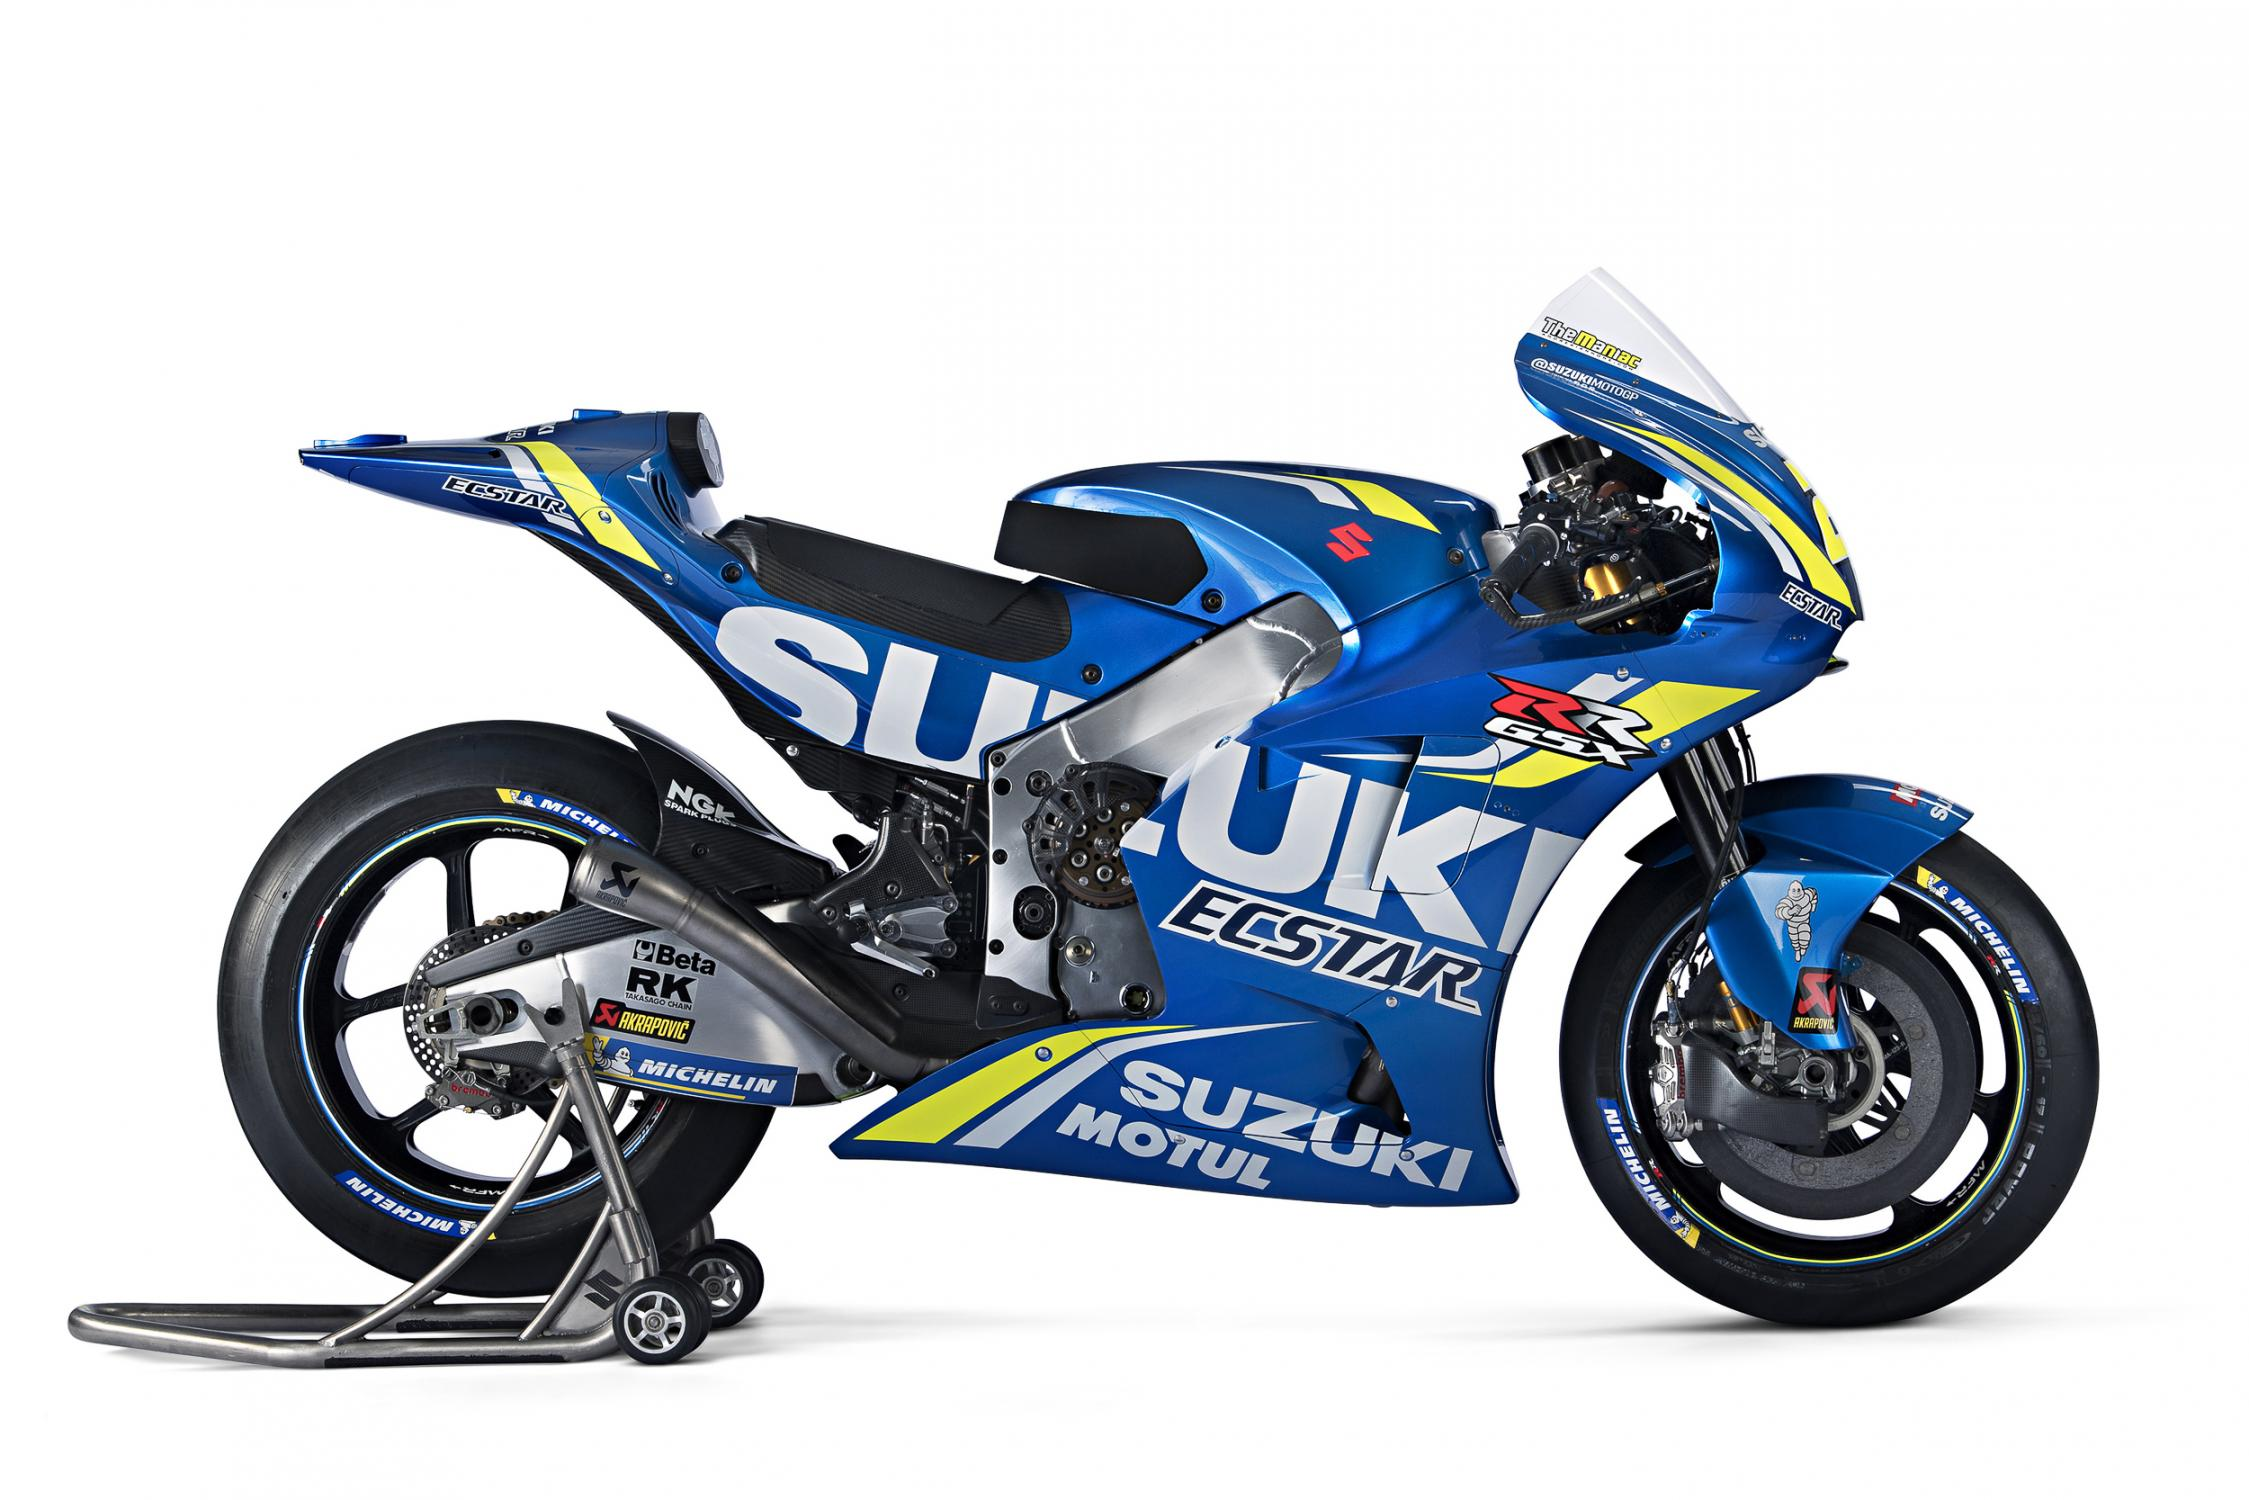 suzuki-gsx-rr-2018-motogp-machine-001.gallery_full_top_fullscreen.jpg